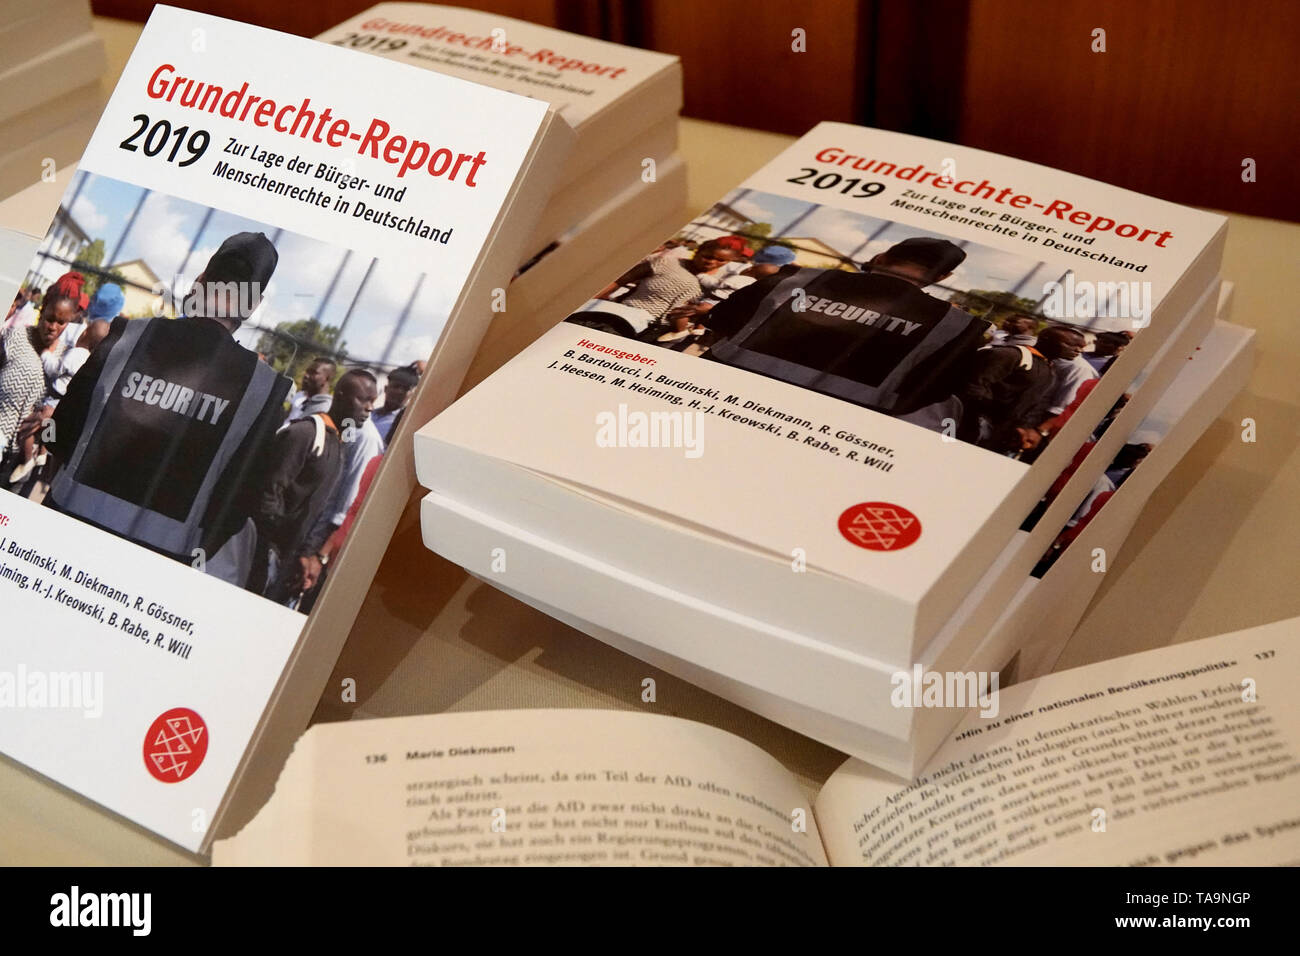 Karlsruhe, Germany. 23rd May, 2019. The new Fundamental Rights Report 2019 will be available for viewing when the book is presented. (to dpa: 'Gysi stimulates social expansion of the Basic Law') Credit: Simon Sachseder/dpa/Alamy Live News - Stock Image